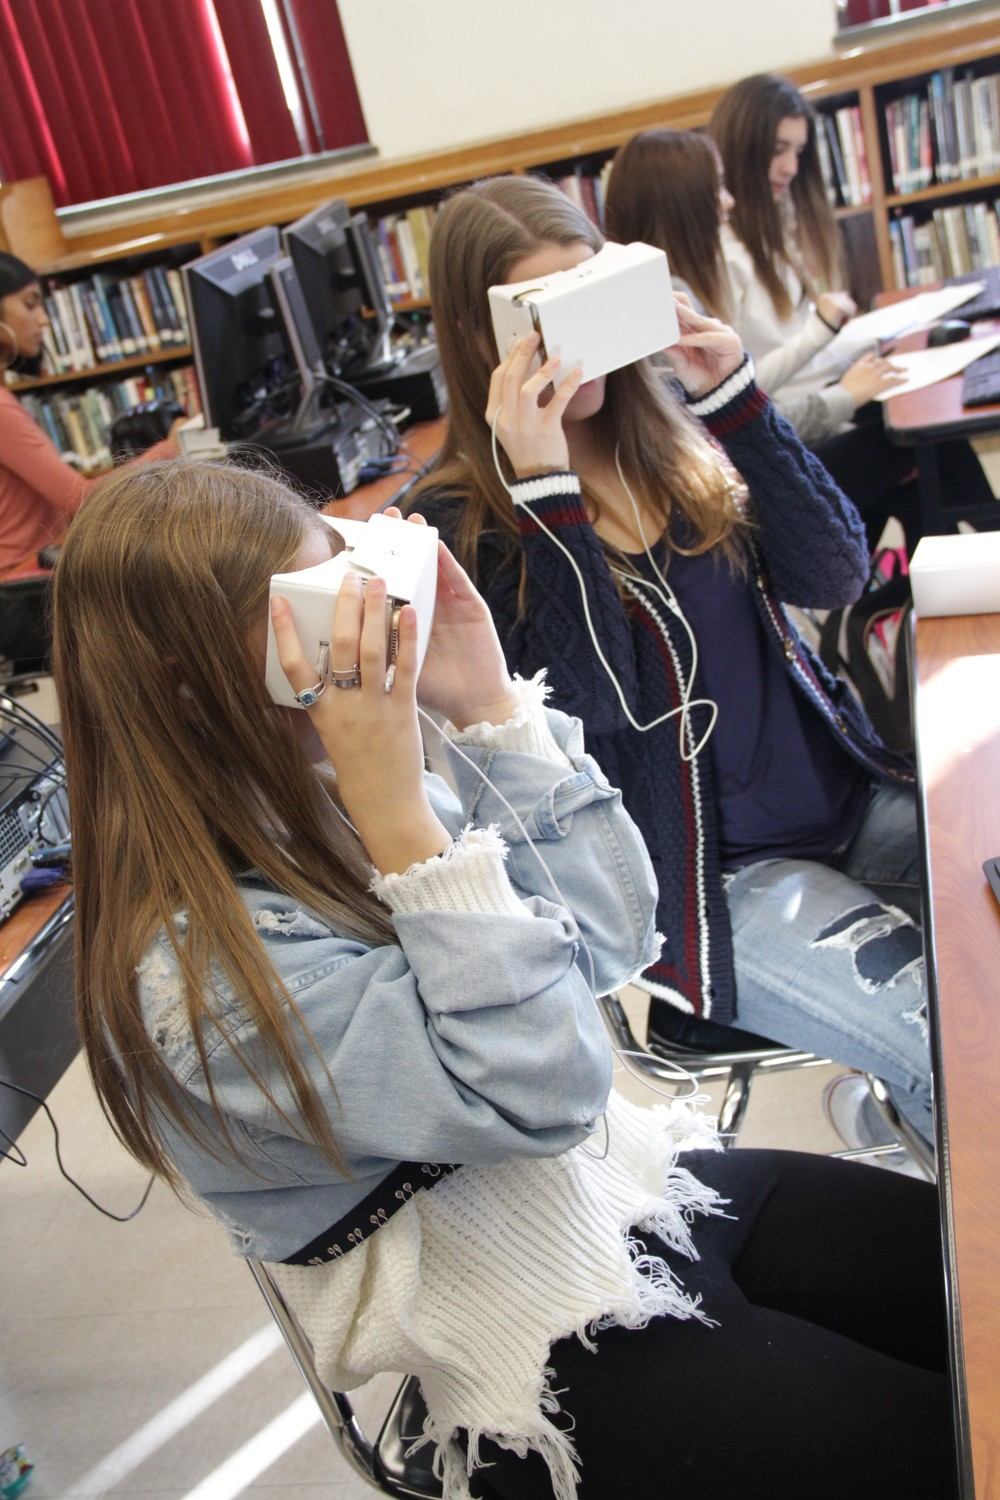 Students in Christine O'Neill's Spanish class at Mepham High School in North Bellmore used virtual-reality technology to tour Machu Picchu, in Peru, on Dec. 7.